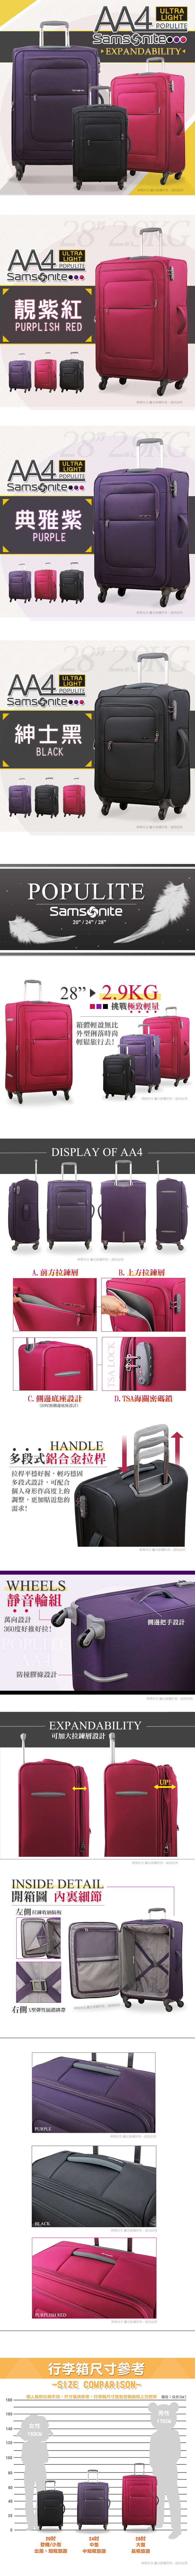 https://shop.r10s.com/e24b9150-ec8b-11e4-979f-005056b74d17/upload/samsonite/aa4.jpg